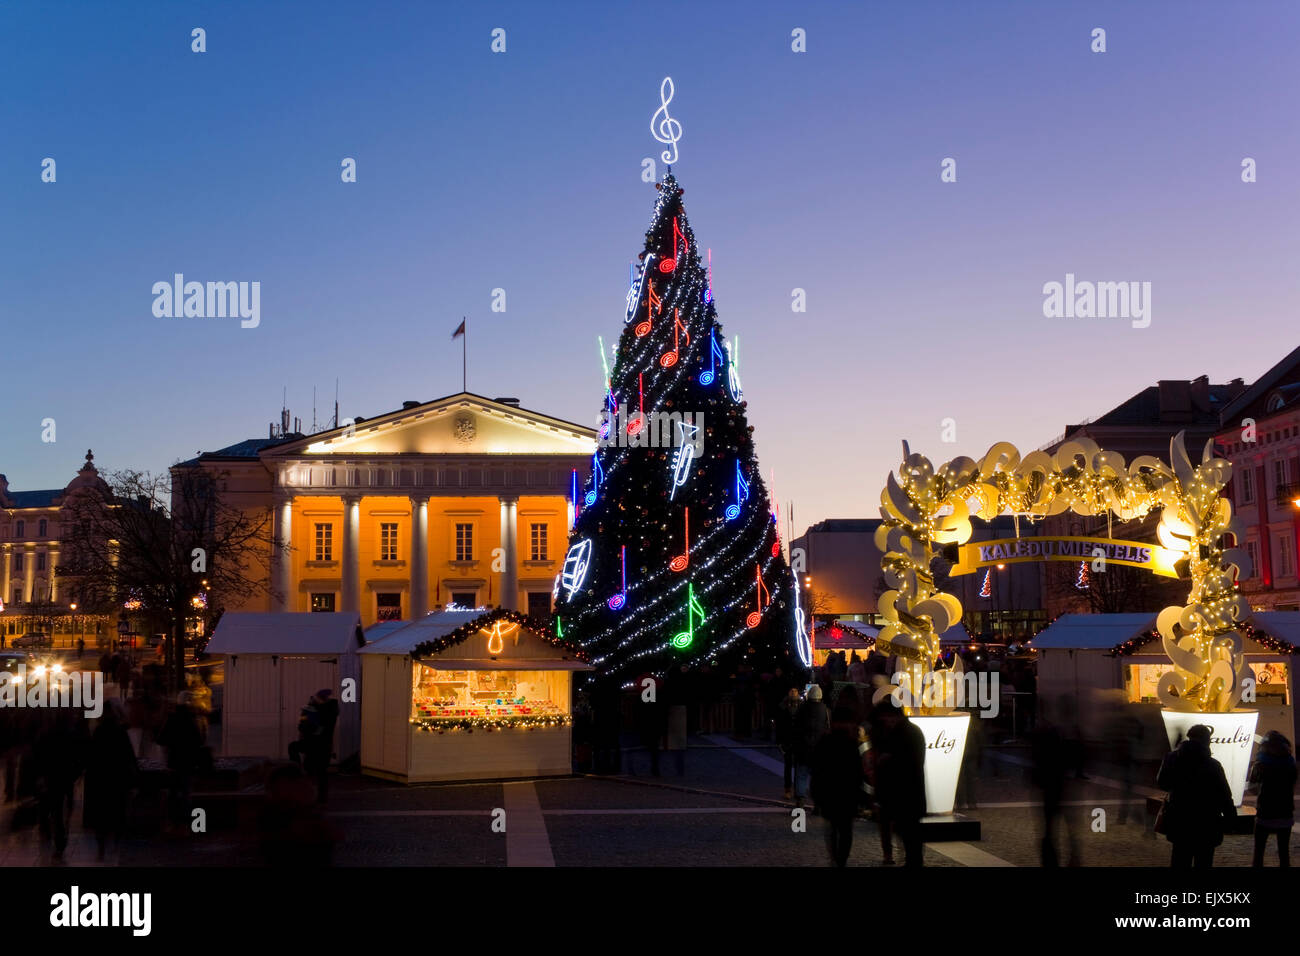 VILNIUS, LITHUANIA - DECEMBER 26, 2014: Paulig coffee - the sponsor of Christmas holidays in Baltic countries. Brand - Stock Image